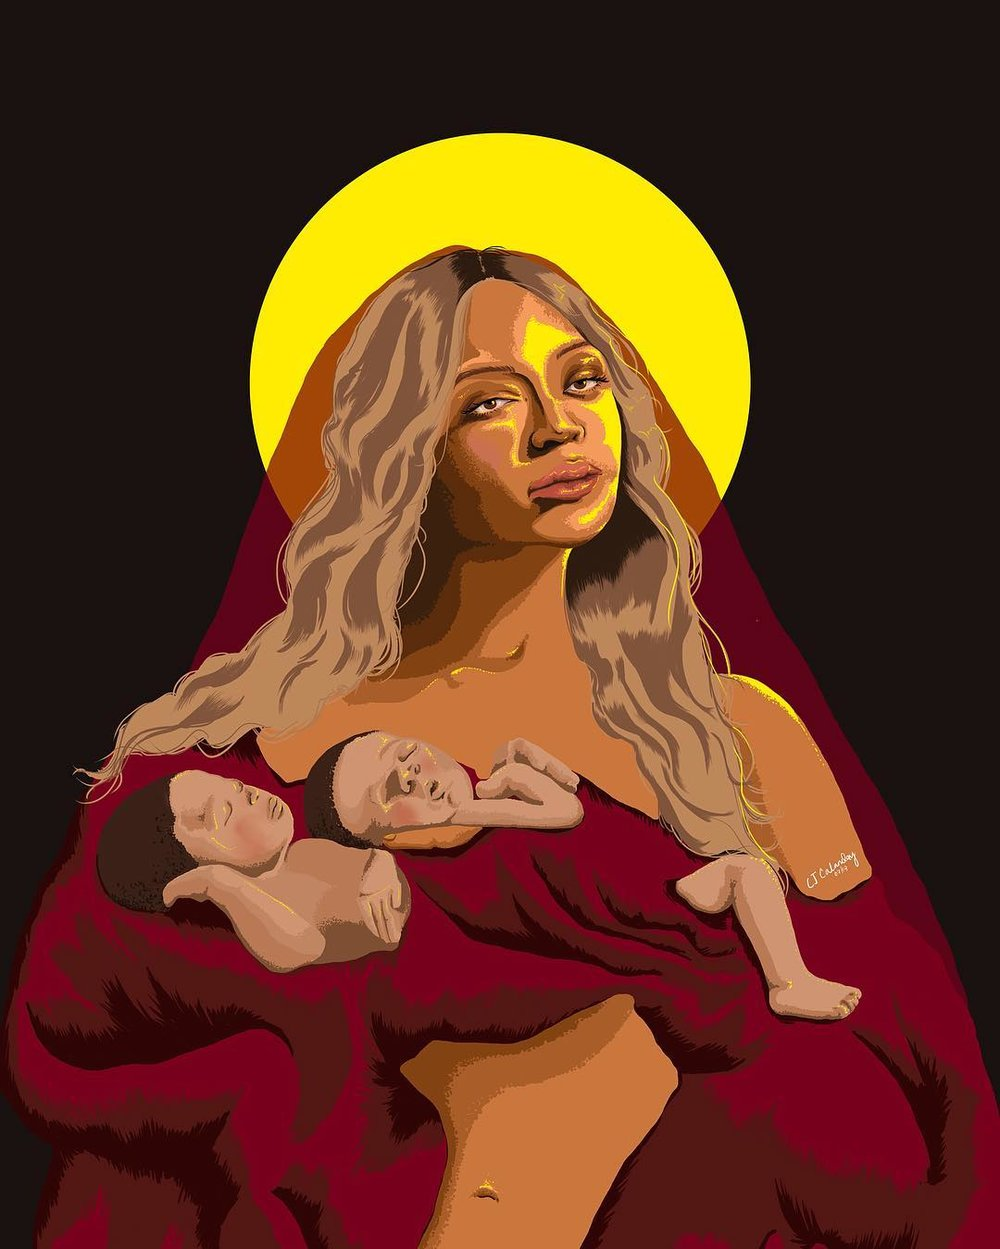 chaariz filipina london artist digital doodler - beyonce.jpg